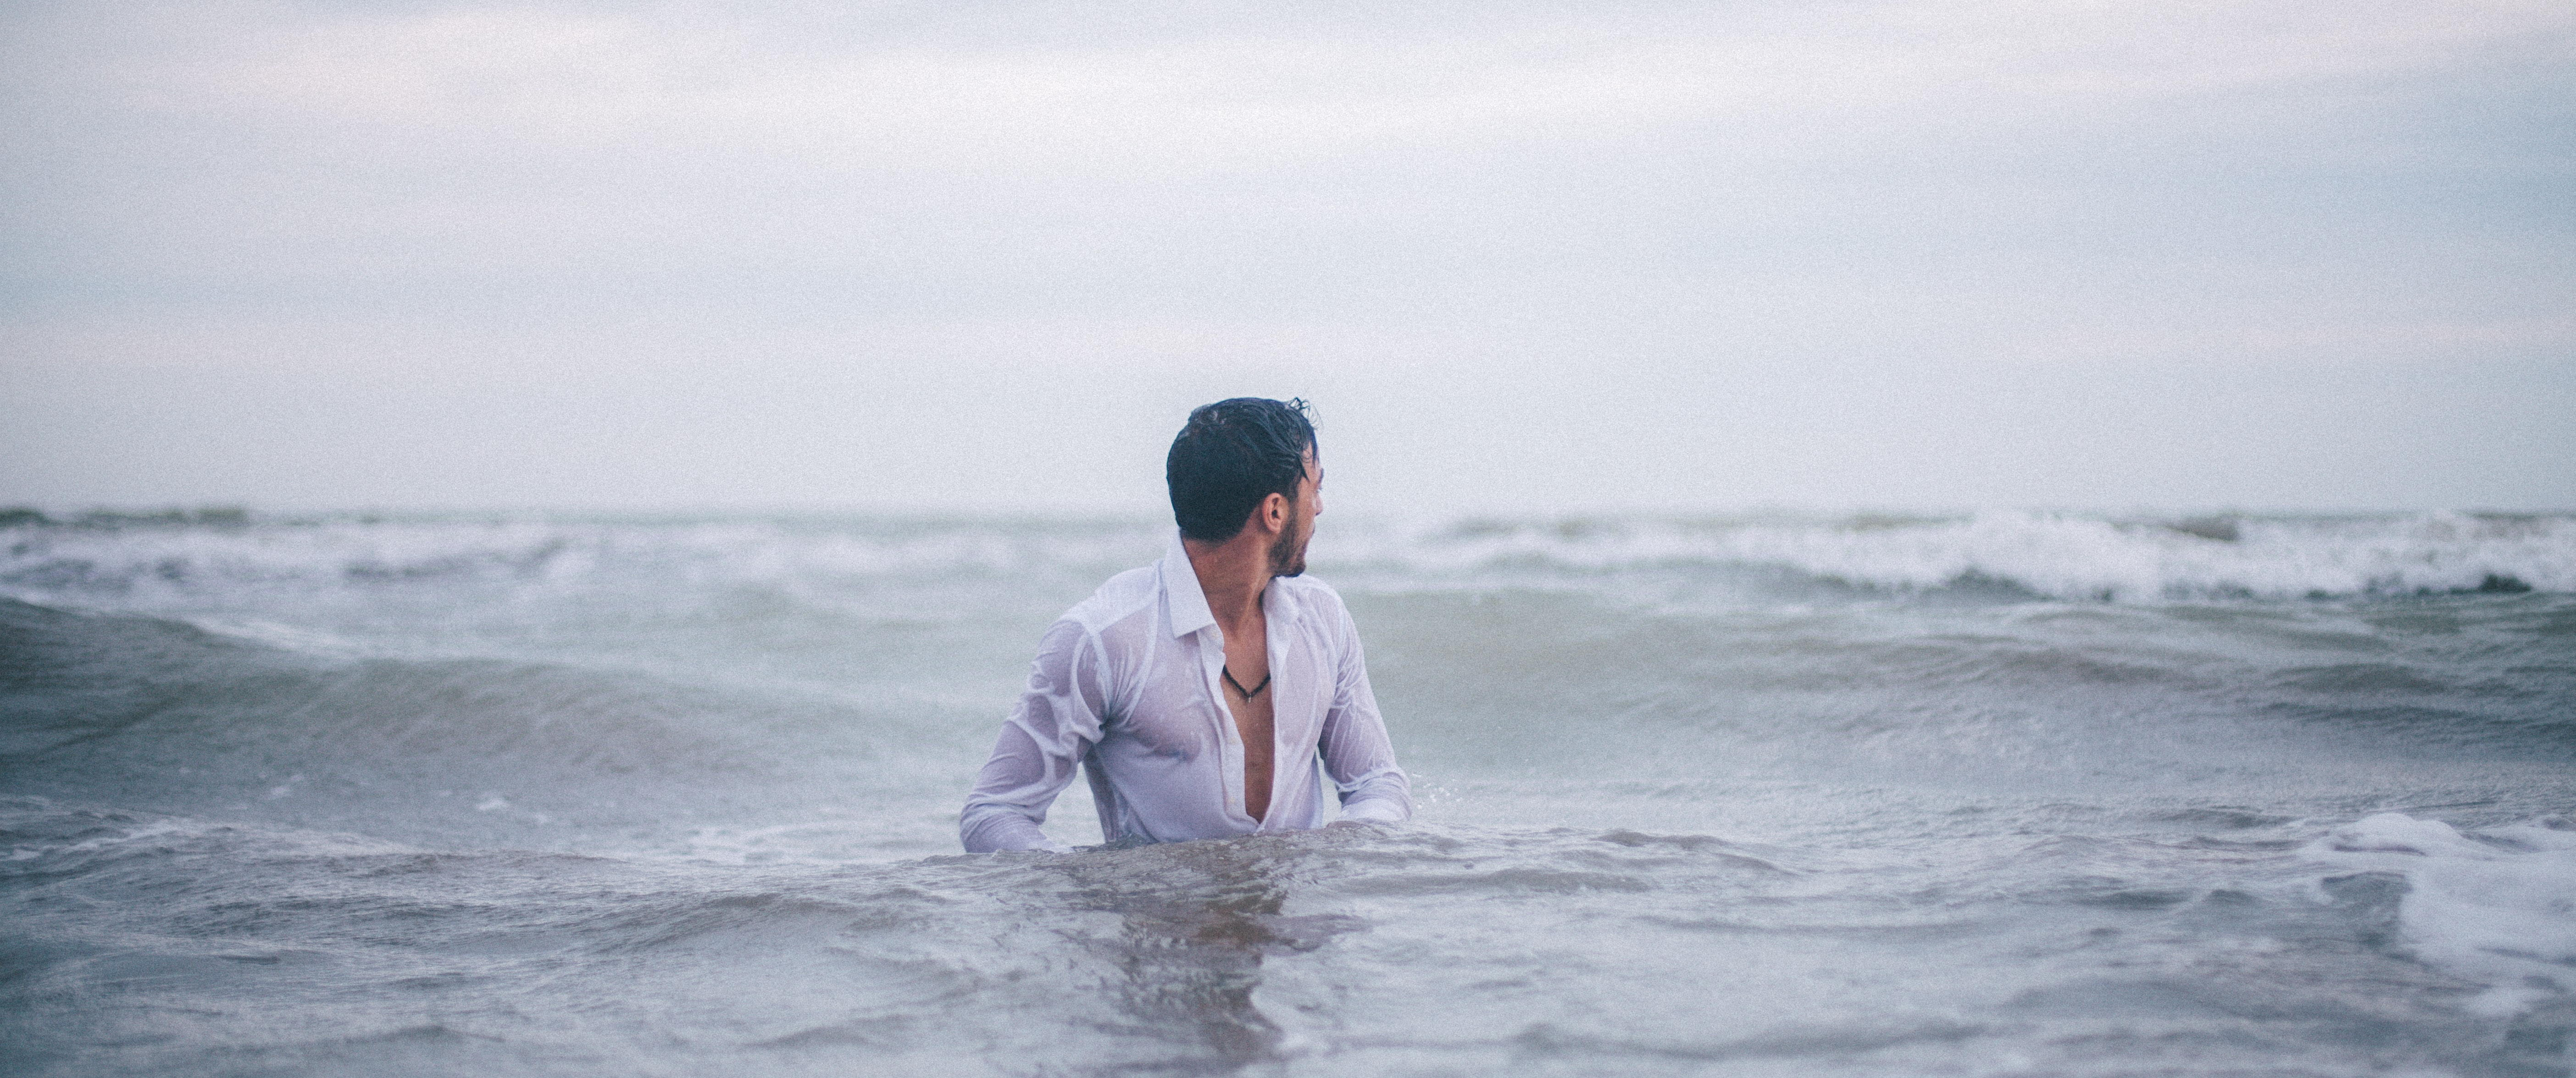 man in water